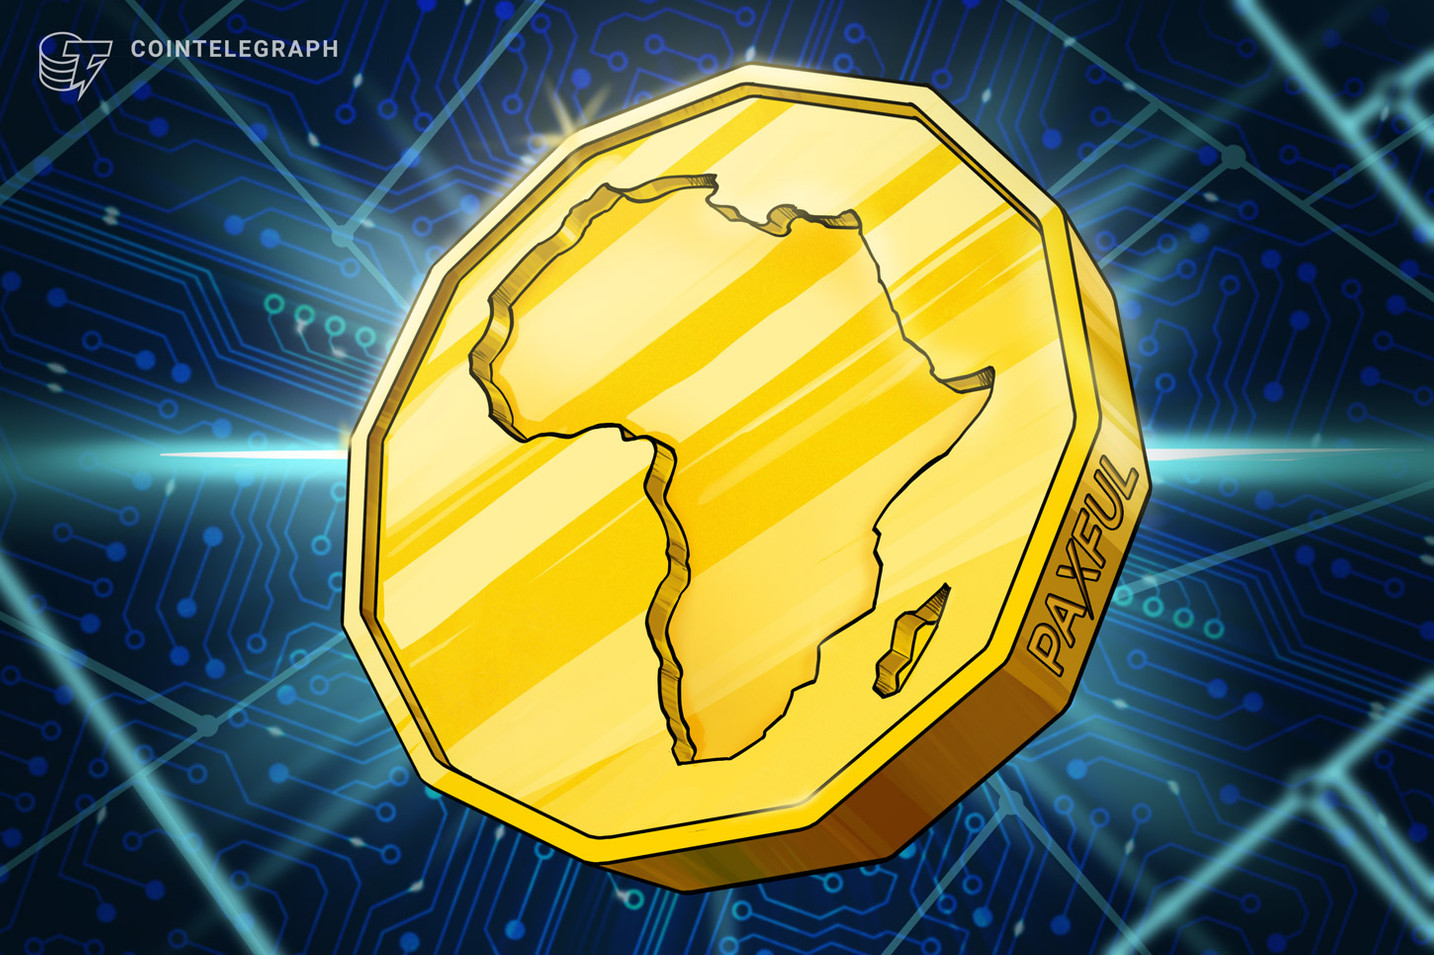 P2P Crypto Trading Volume Increased 2800% in South Africa, Says Paxful